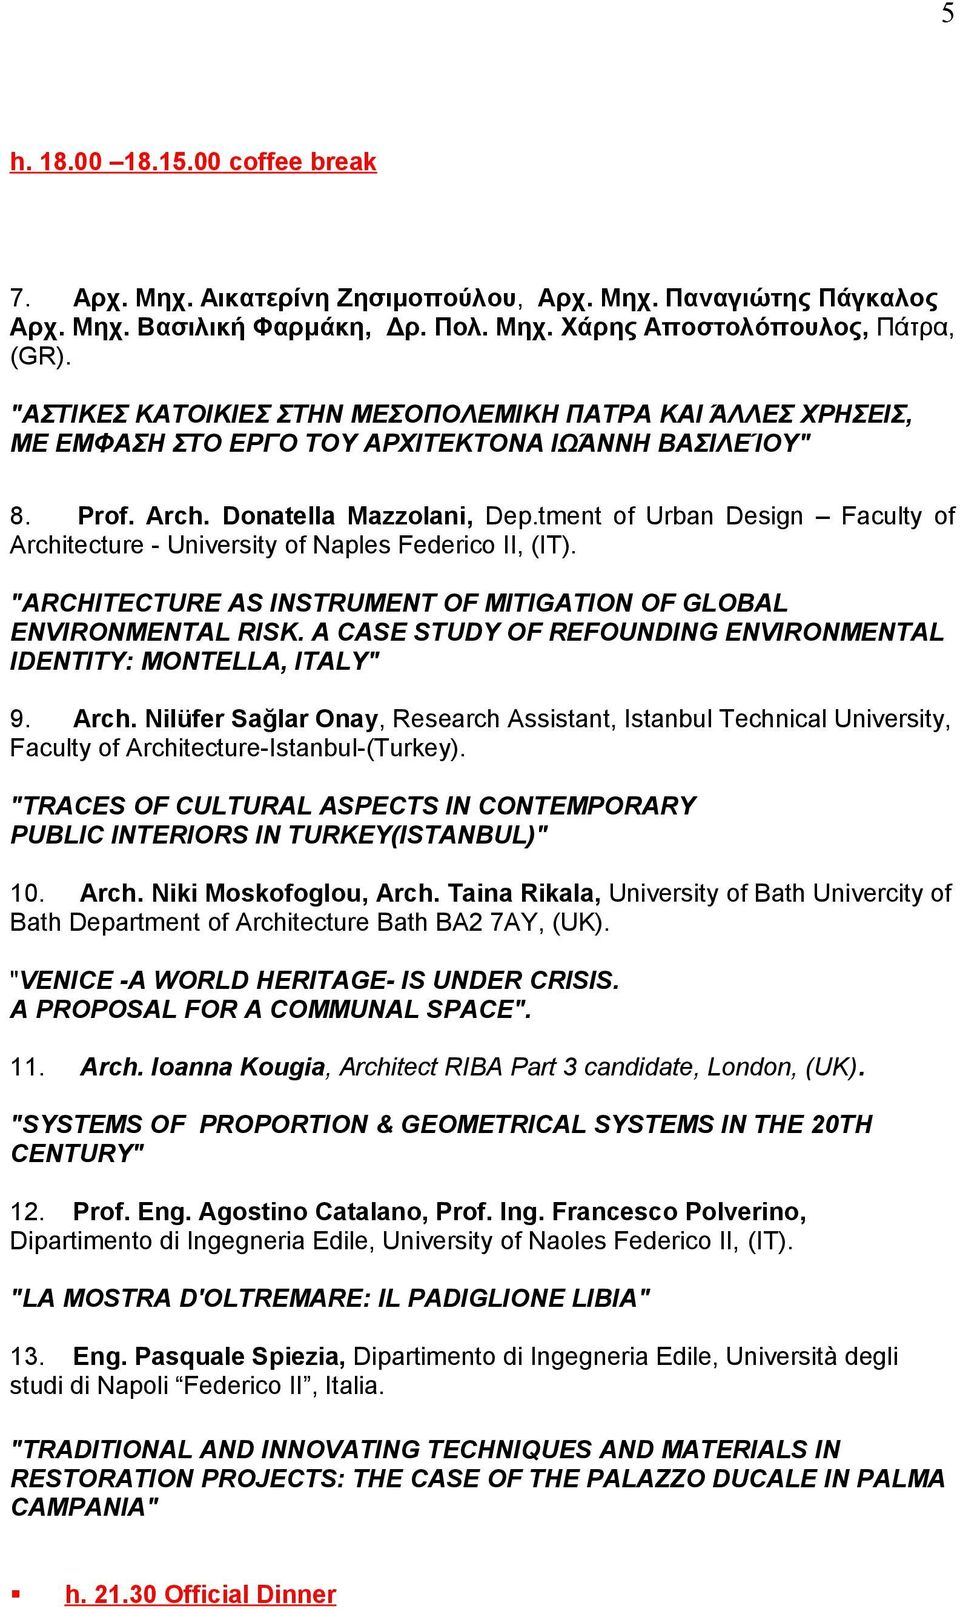 "tment of Urban Design Faculty of Architecture - University of Naples Federico II, (IT). ""ARCHITECTURE AS INSTRUMENT OF MITIGATION OF GLOBAL ENVIRONMENTAL RISK."